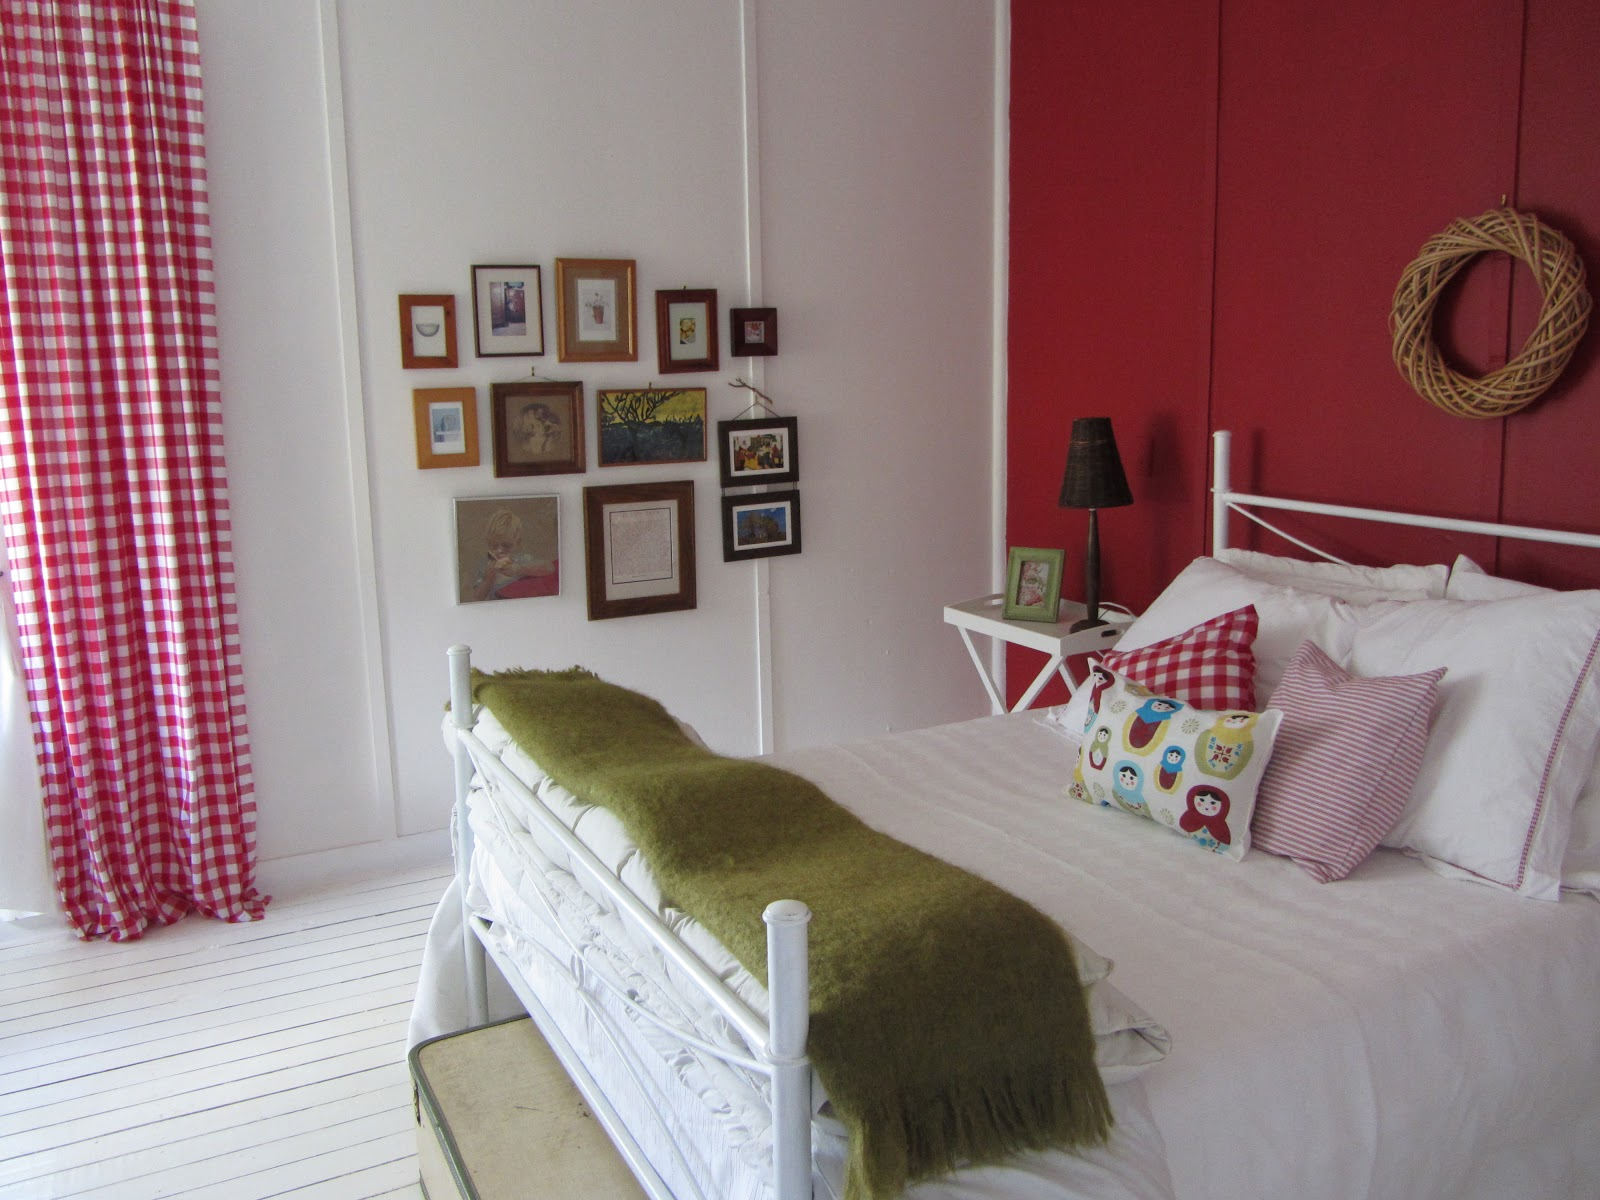 thom haus handmade: A Cheap and Easy Bedroom Makeover ... on Bedroom Ideas Cheap  id=25484